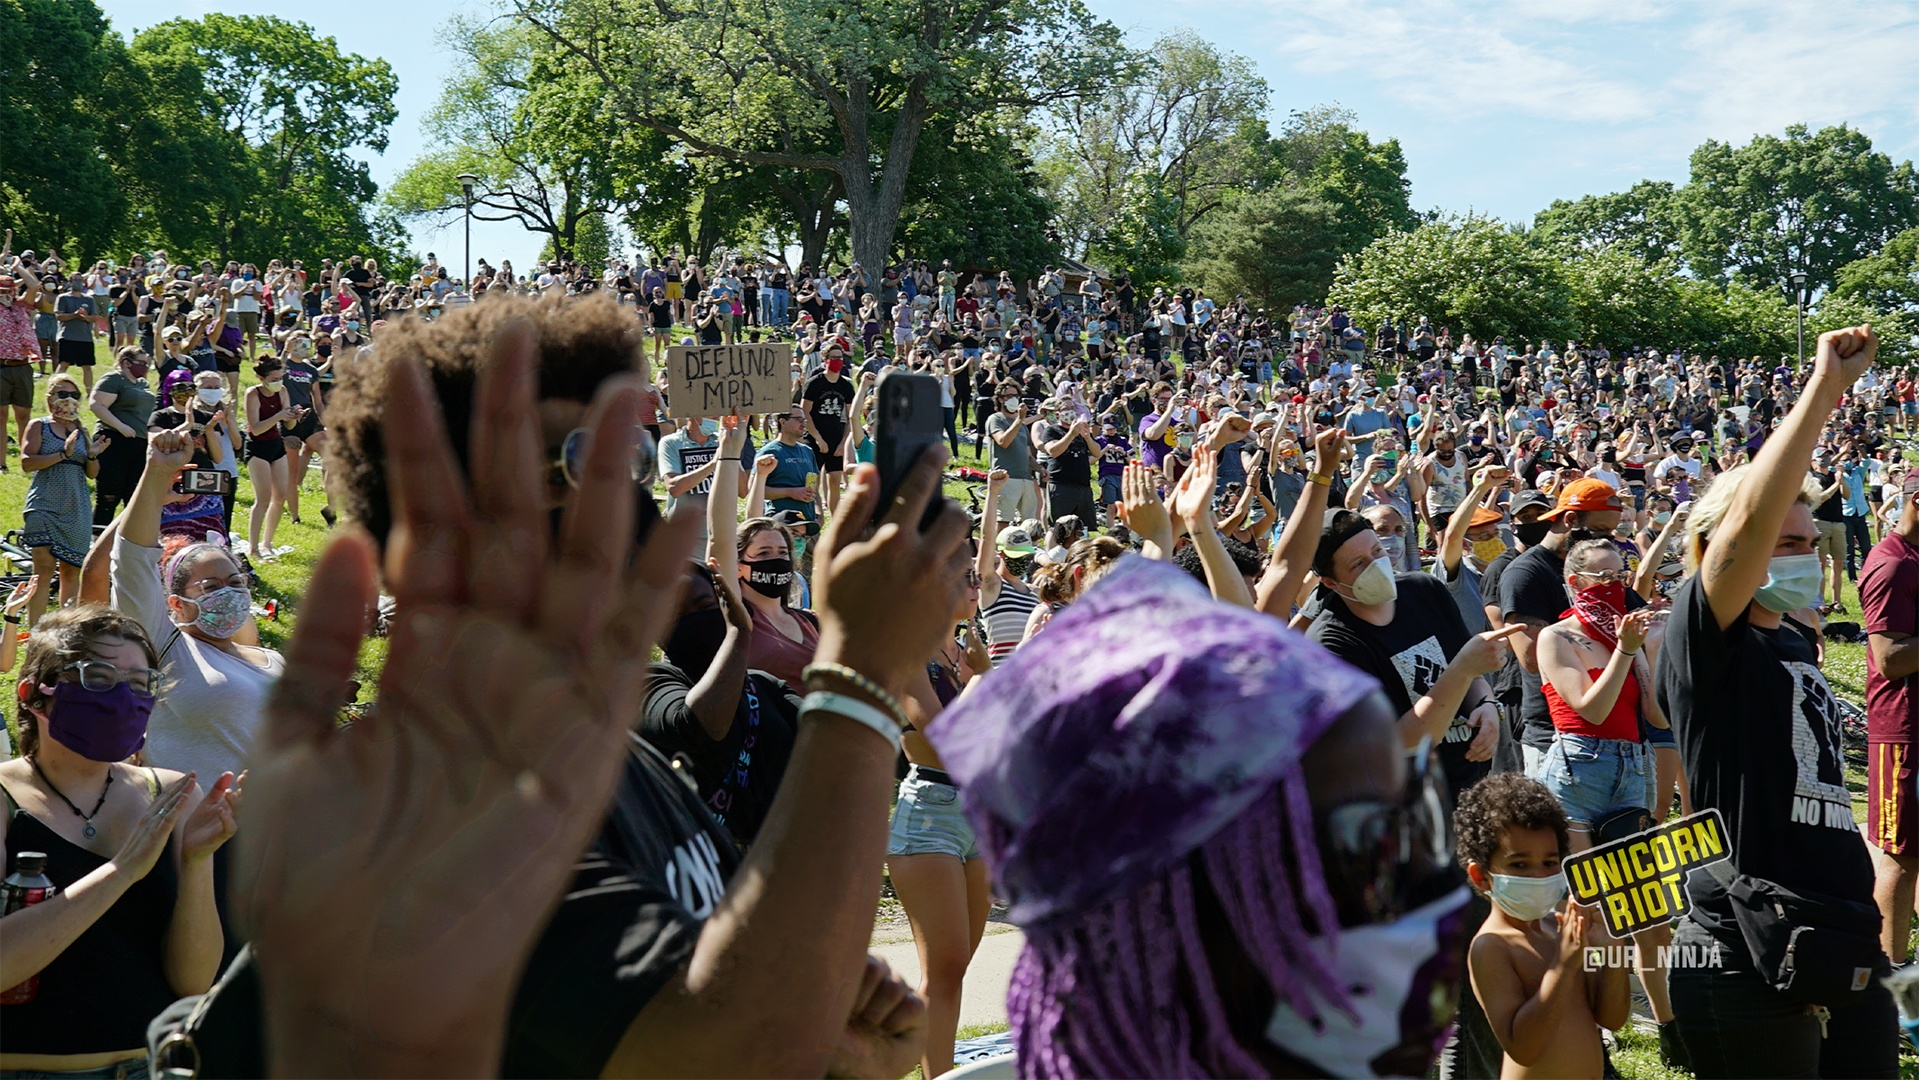 image: the hill of protesters reacts positively to the notion of defunding & disbanding the Minneapolis police department. In the foreground one person's left hand is upraised with their fingers outstretched and their palm towards the stage.